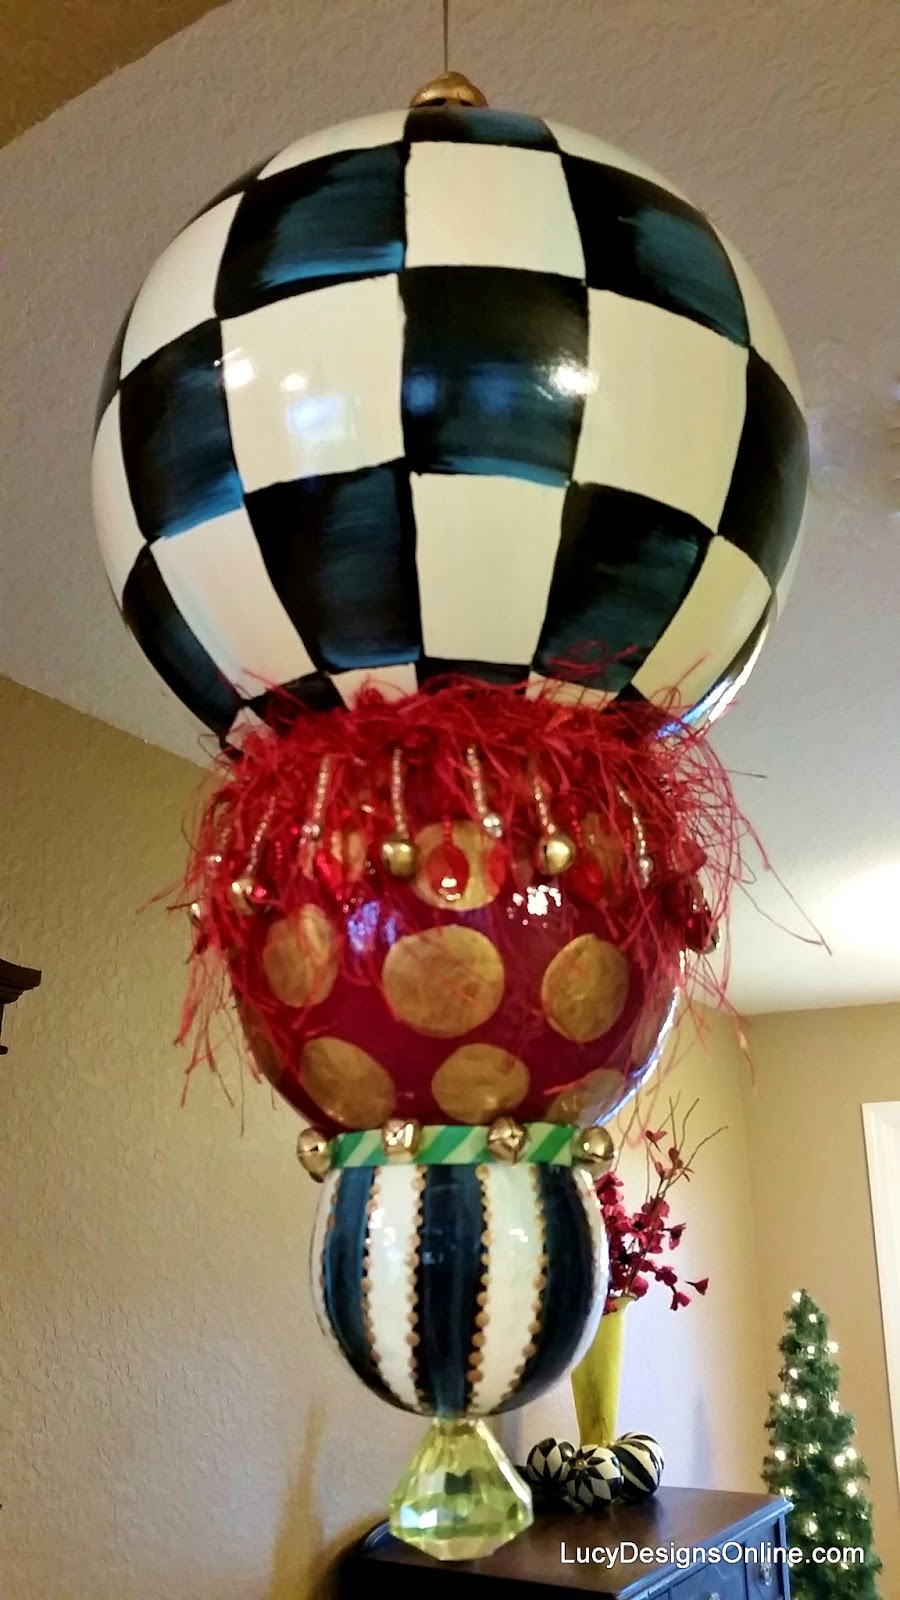 giant whimsical check and stripes Christmas ornament